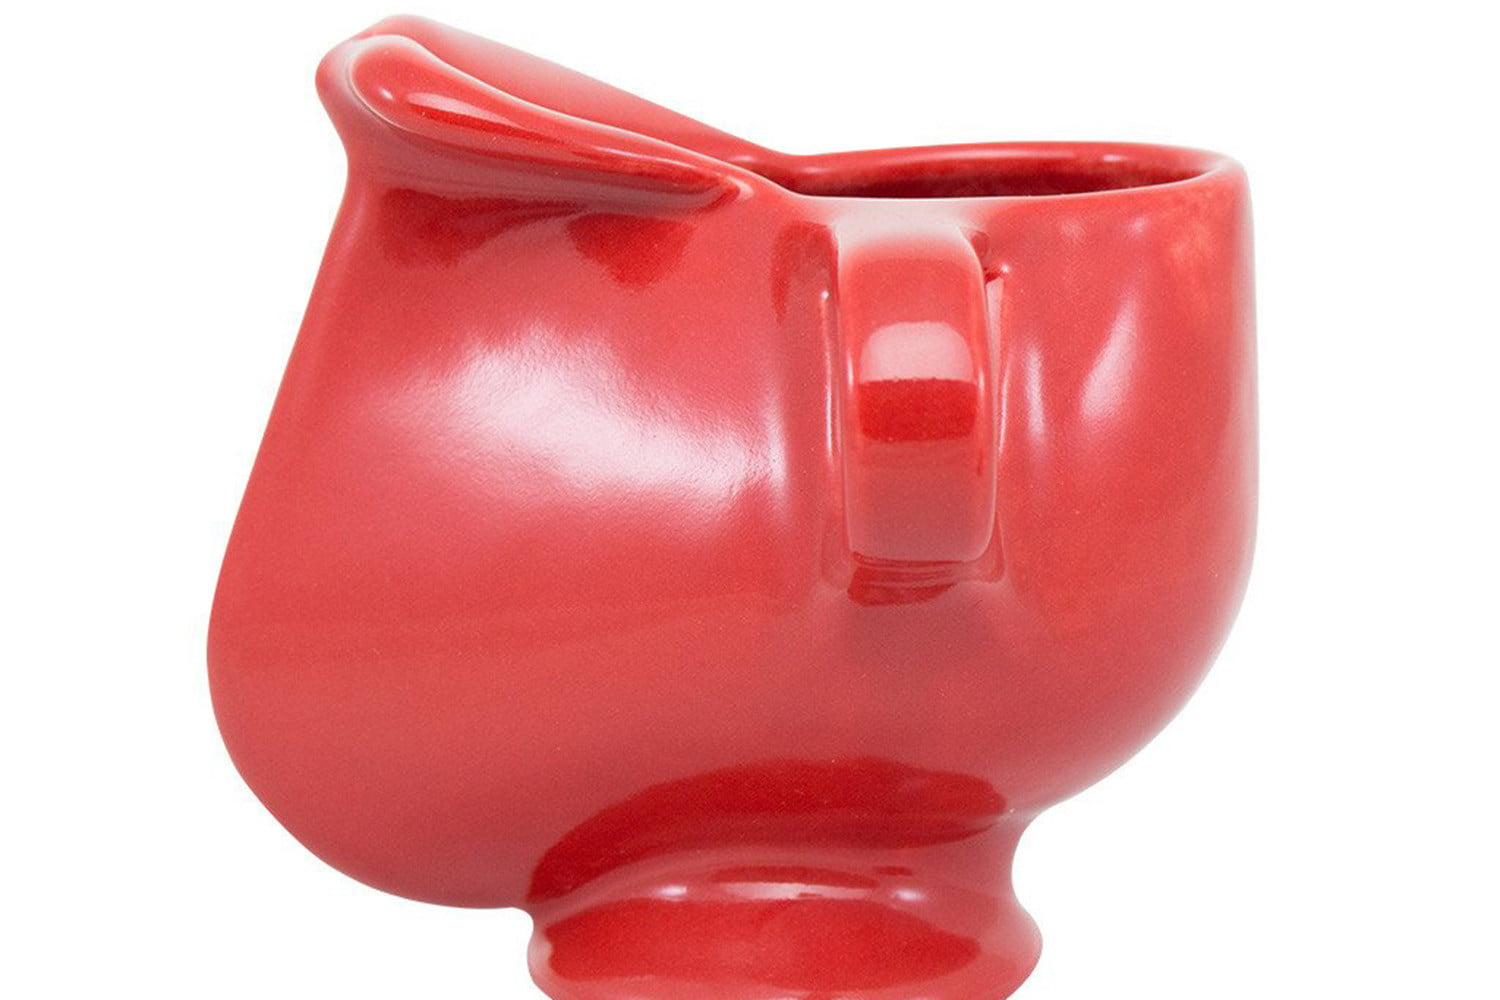 spaceware space cups glossy red  cup 2048x2048